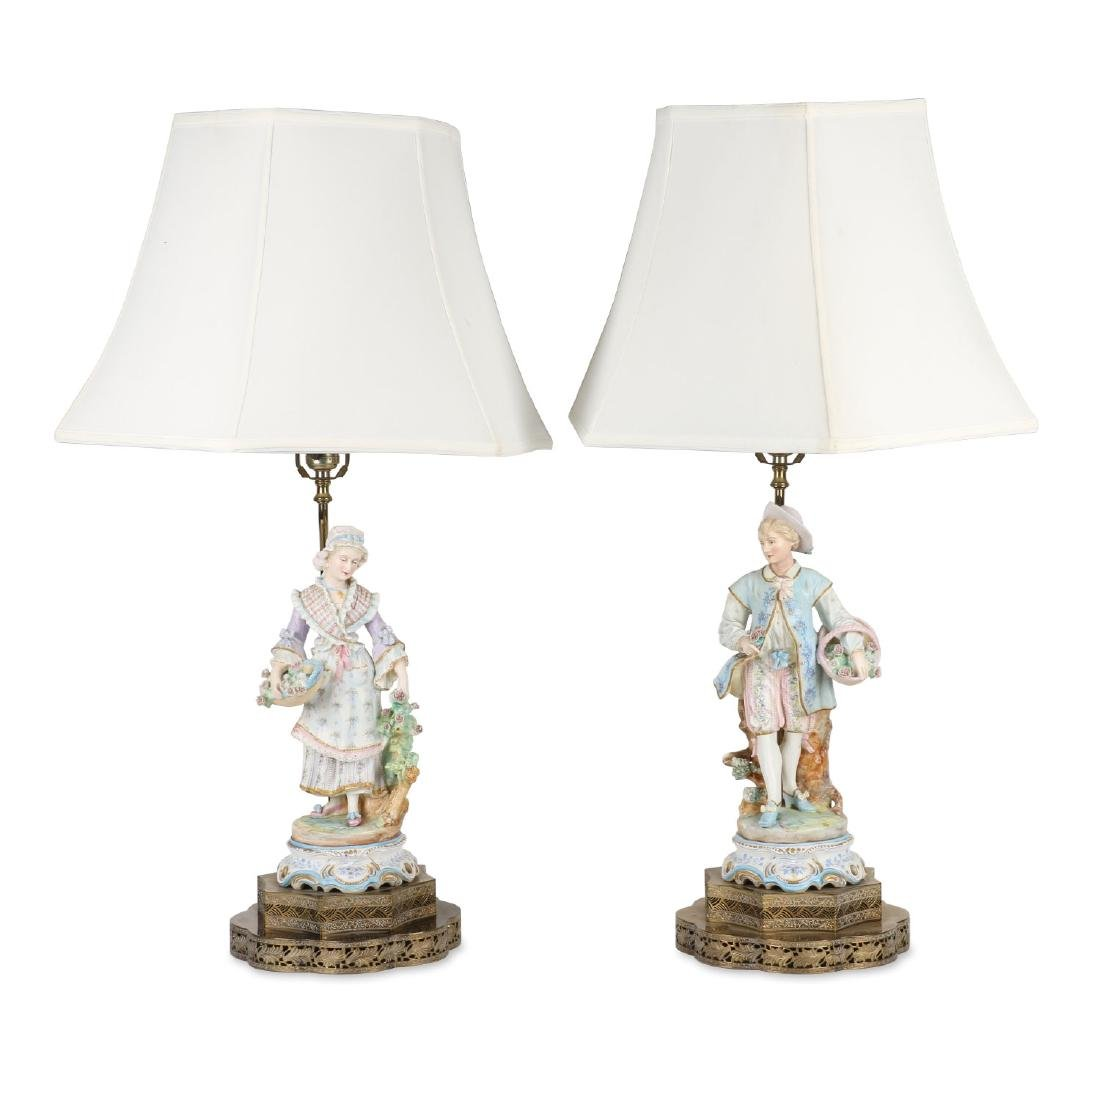 German Bisque Porcelain Lamps